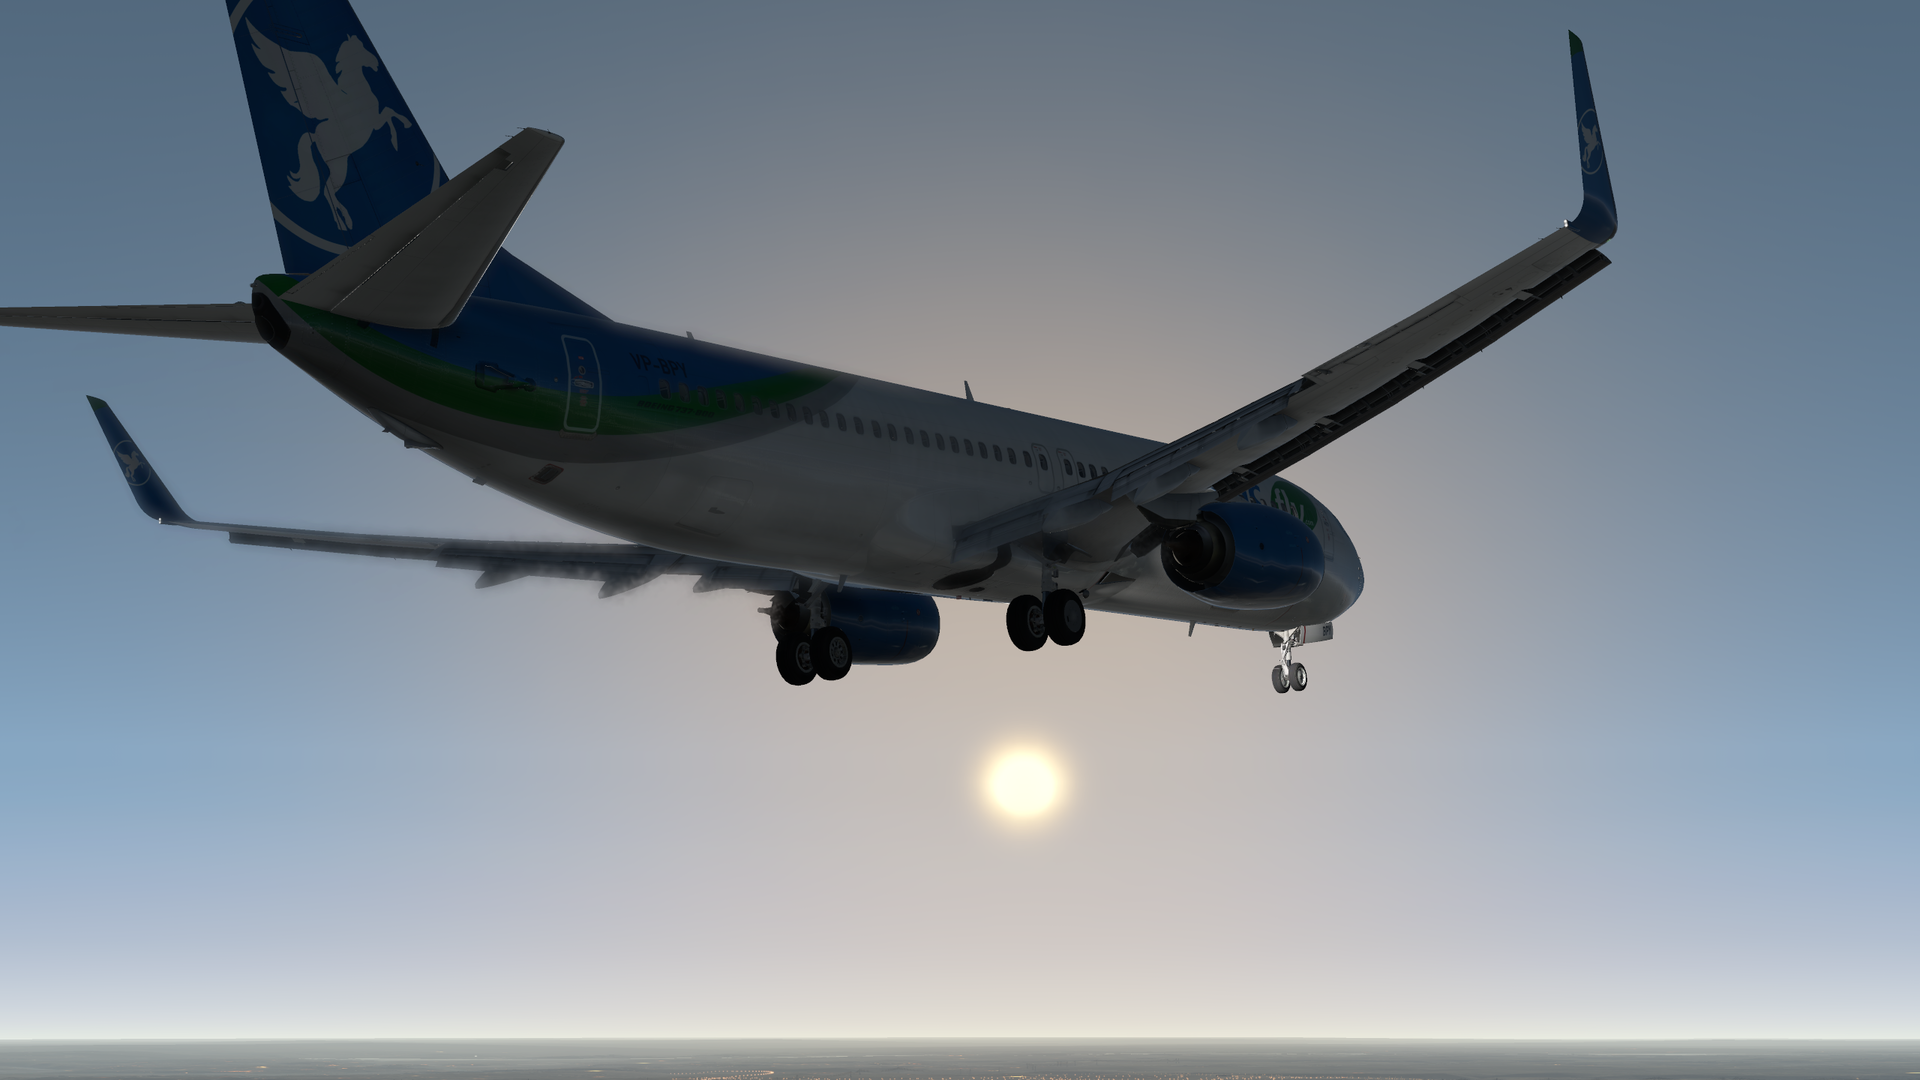 b738_106.png